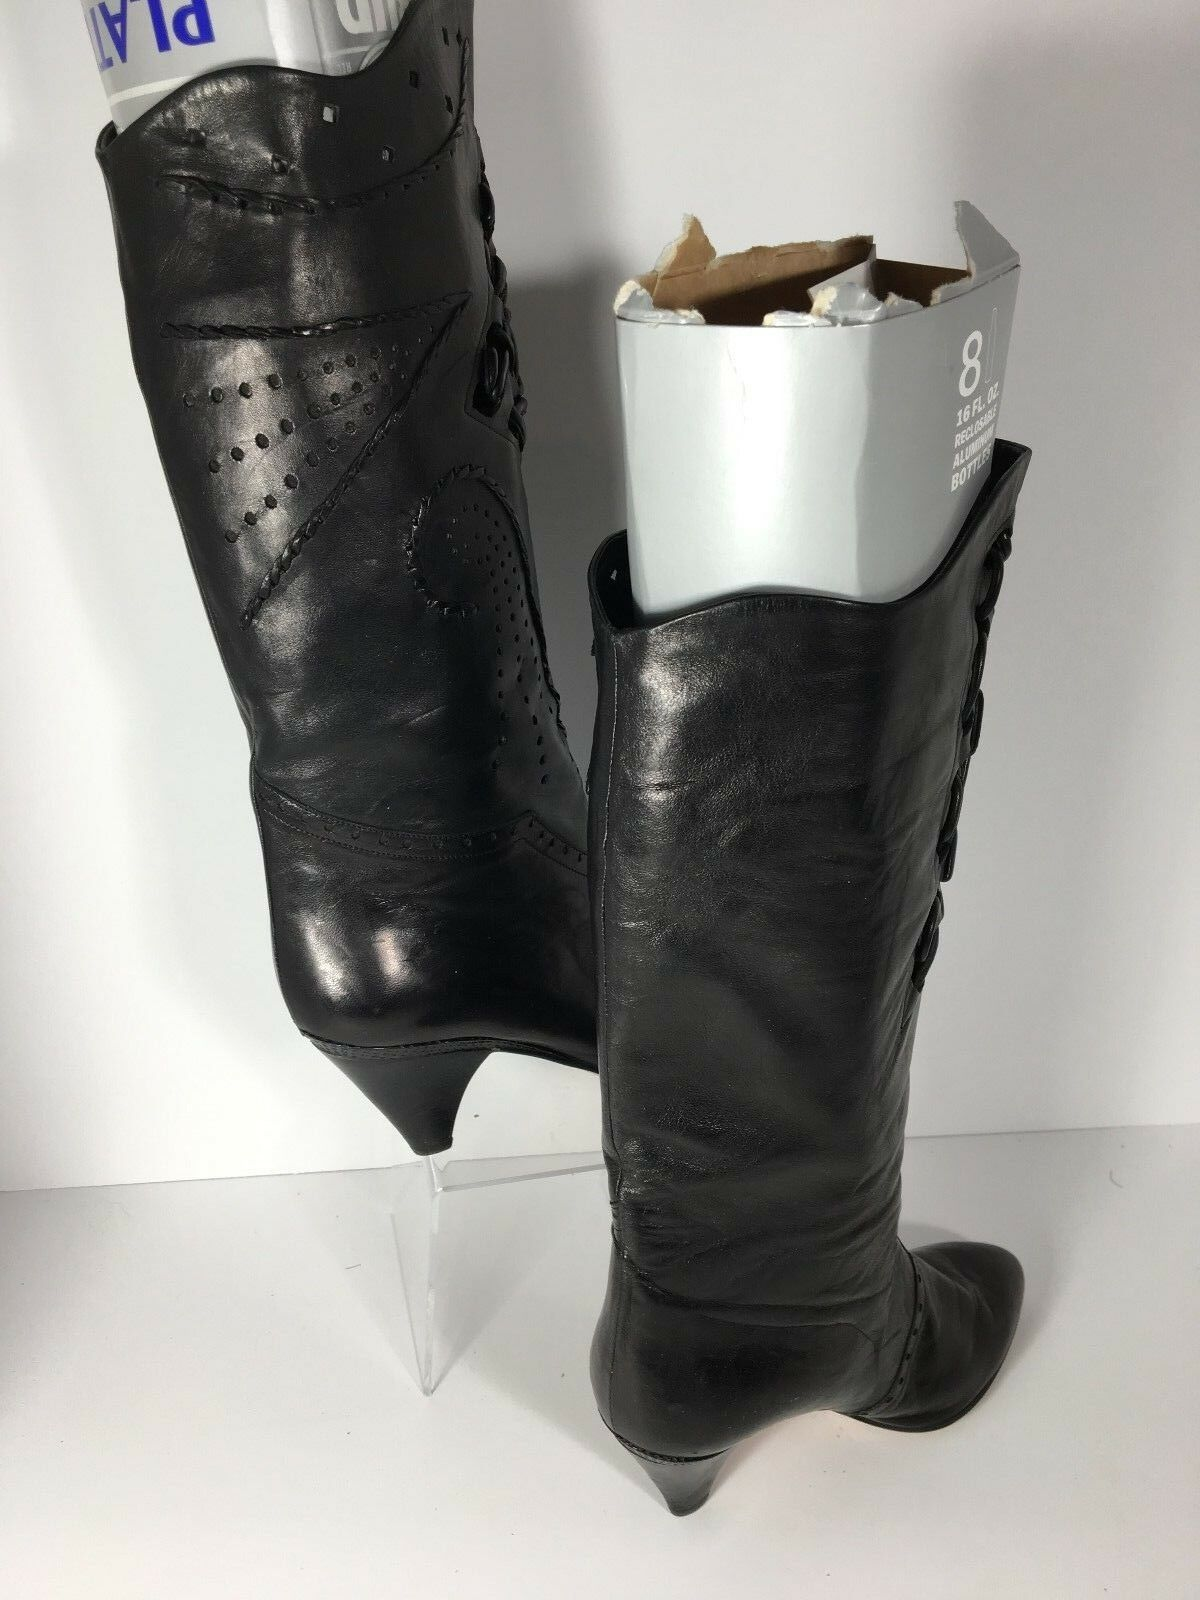 Vero Cuoio Made Italy Black Soft Detailed Leather Knee High Boot Stiletto Size 6